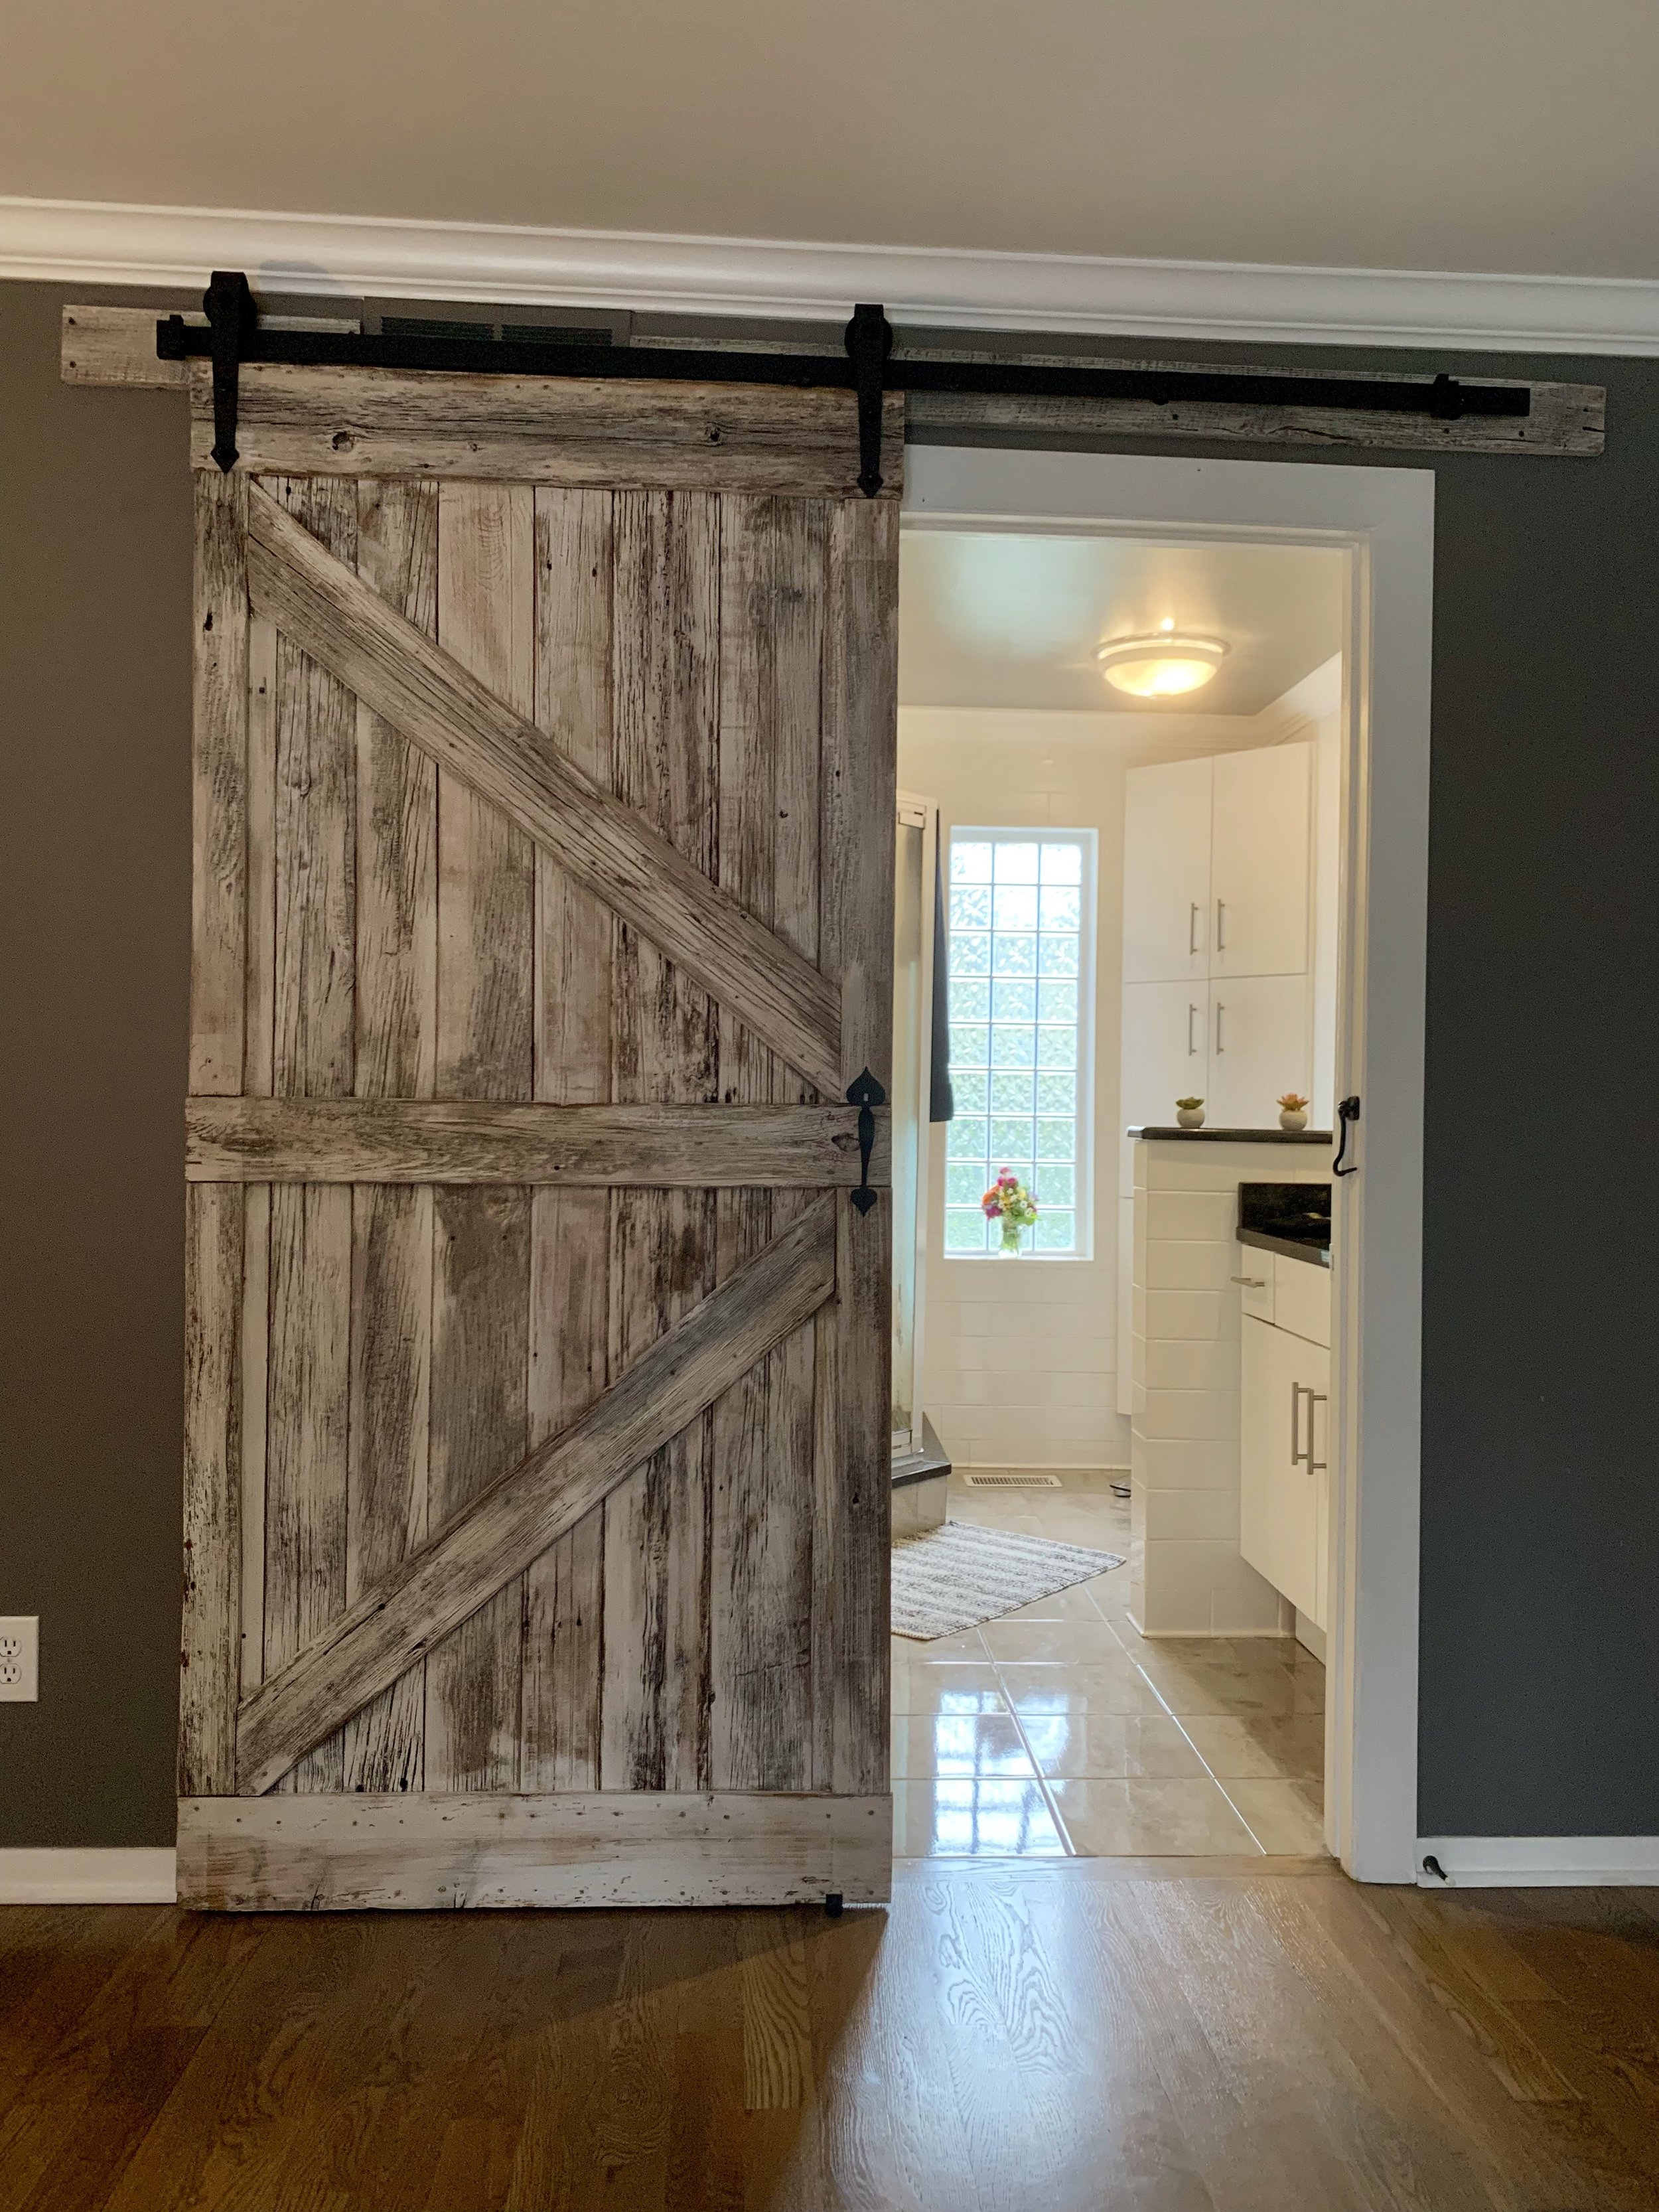 Design your own Custom Sliding Barn Door